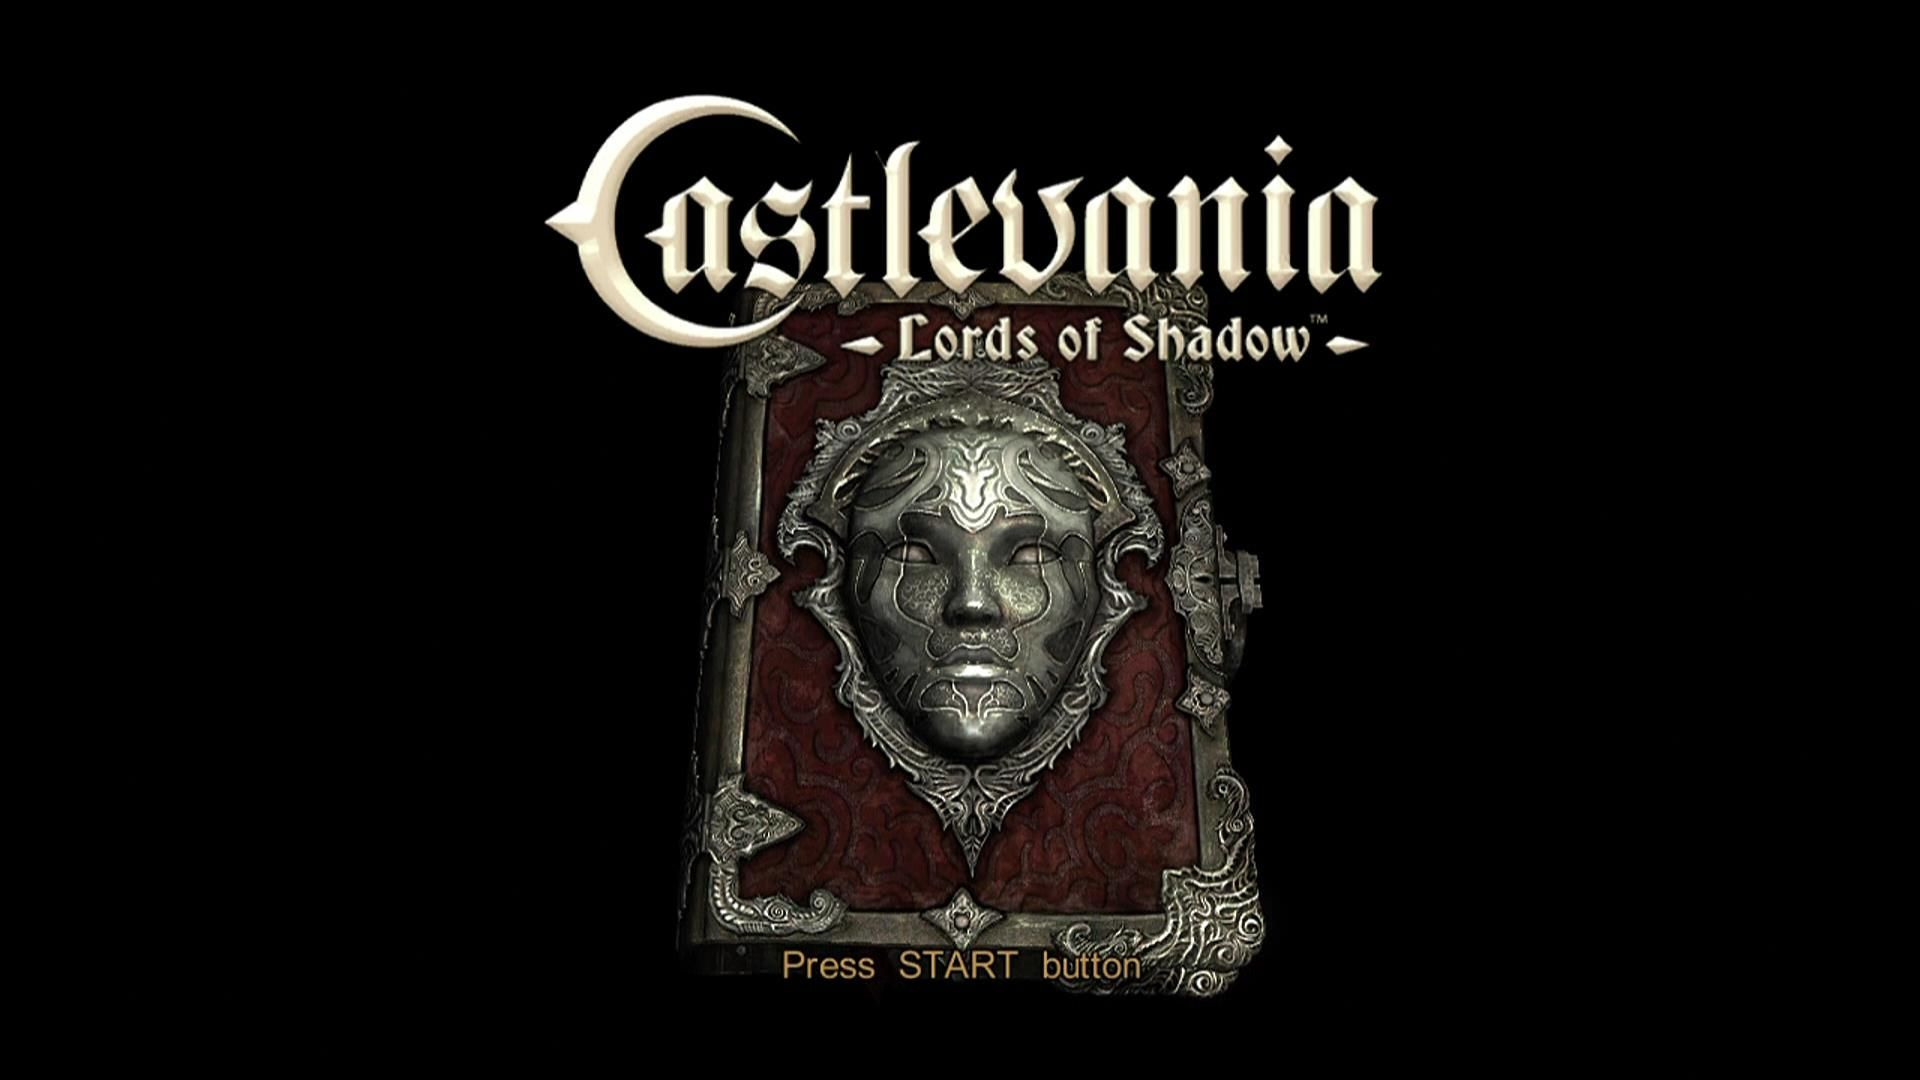 Castlevania: Lords of Shadow Xbox 360 Title screen